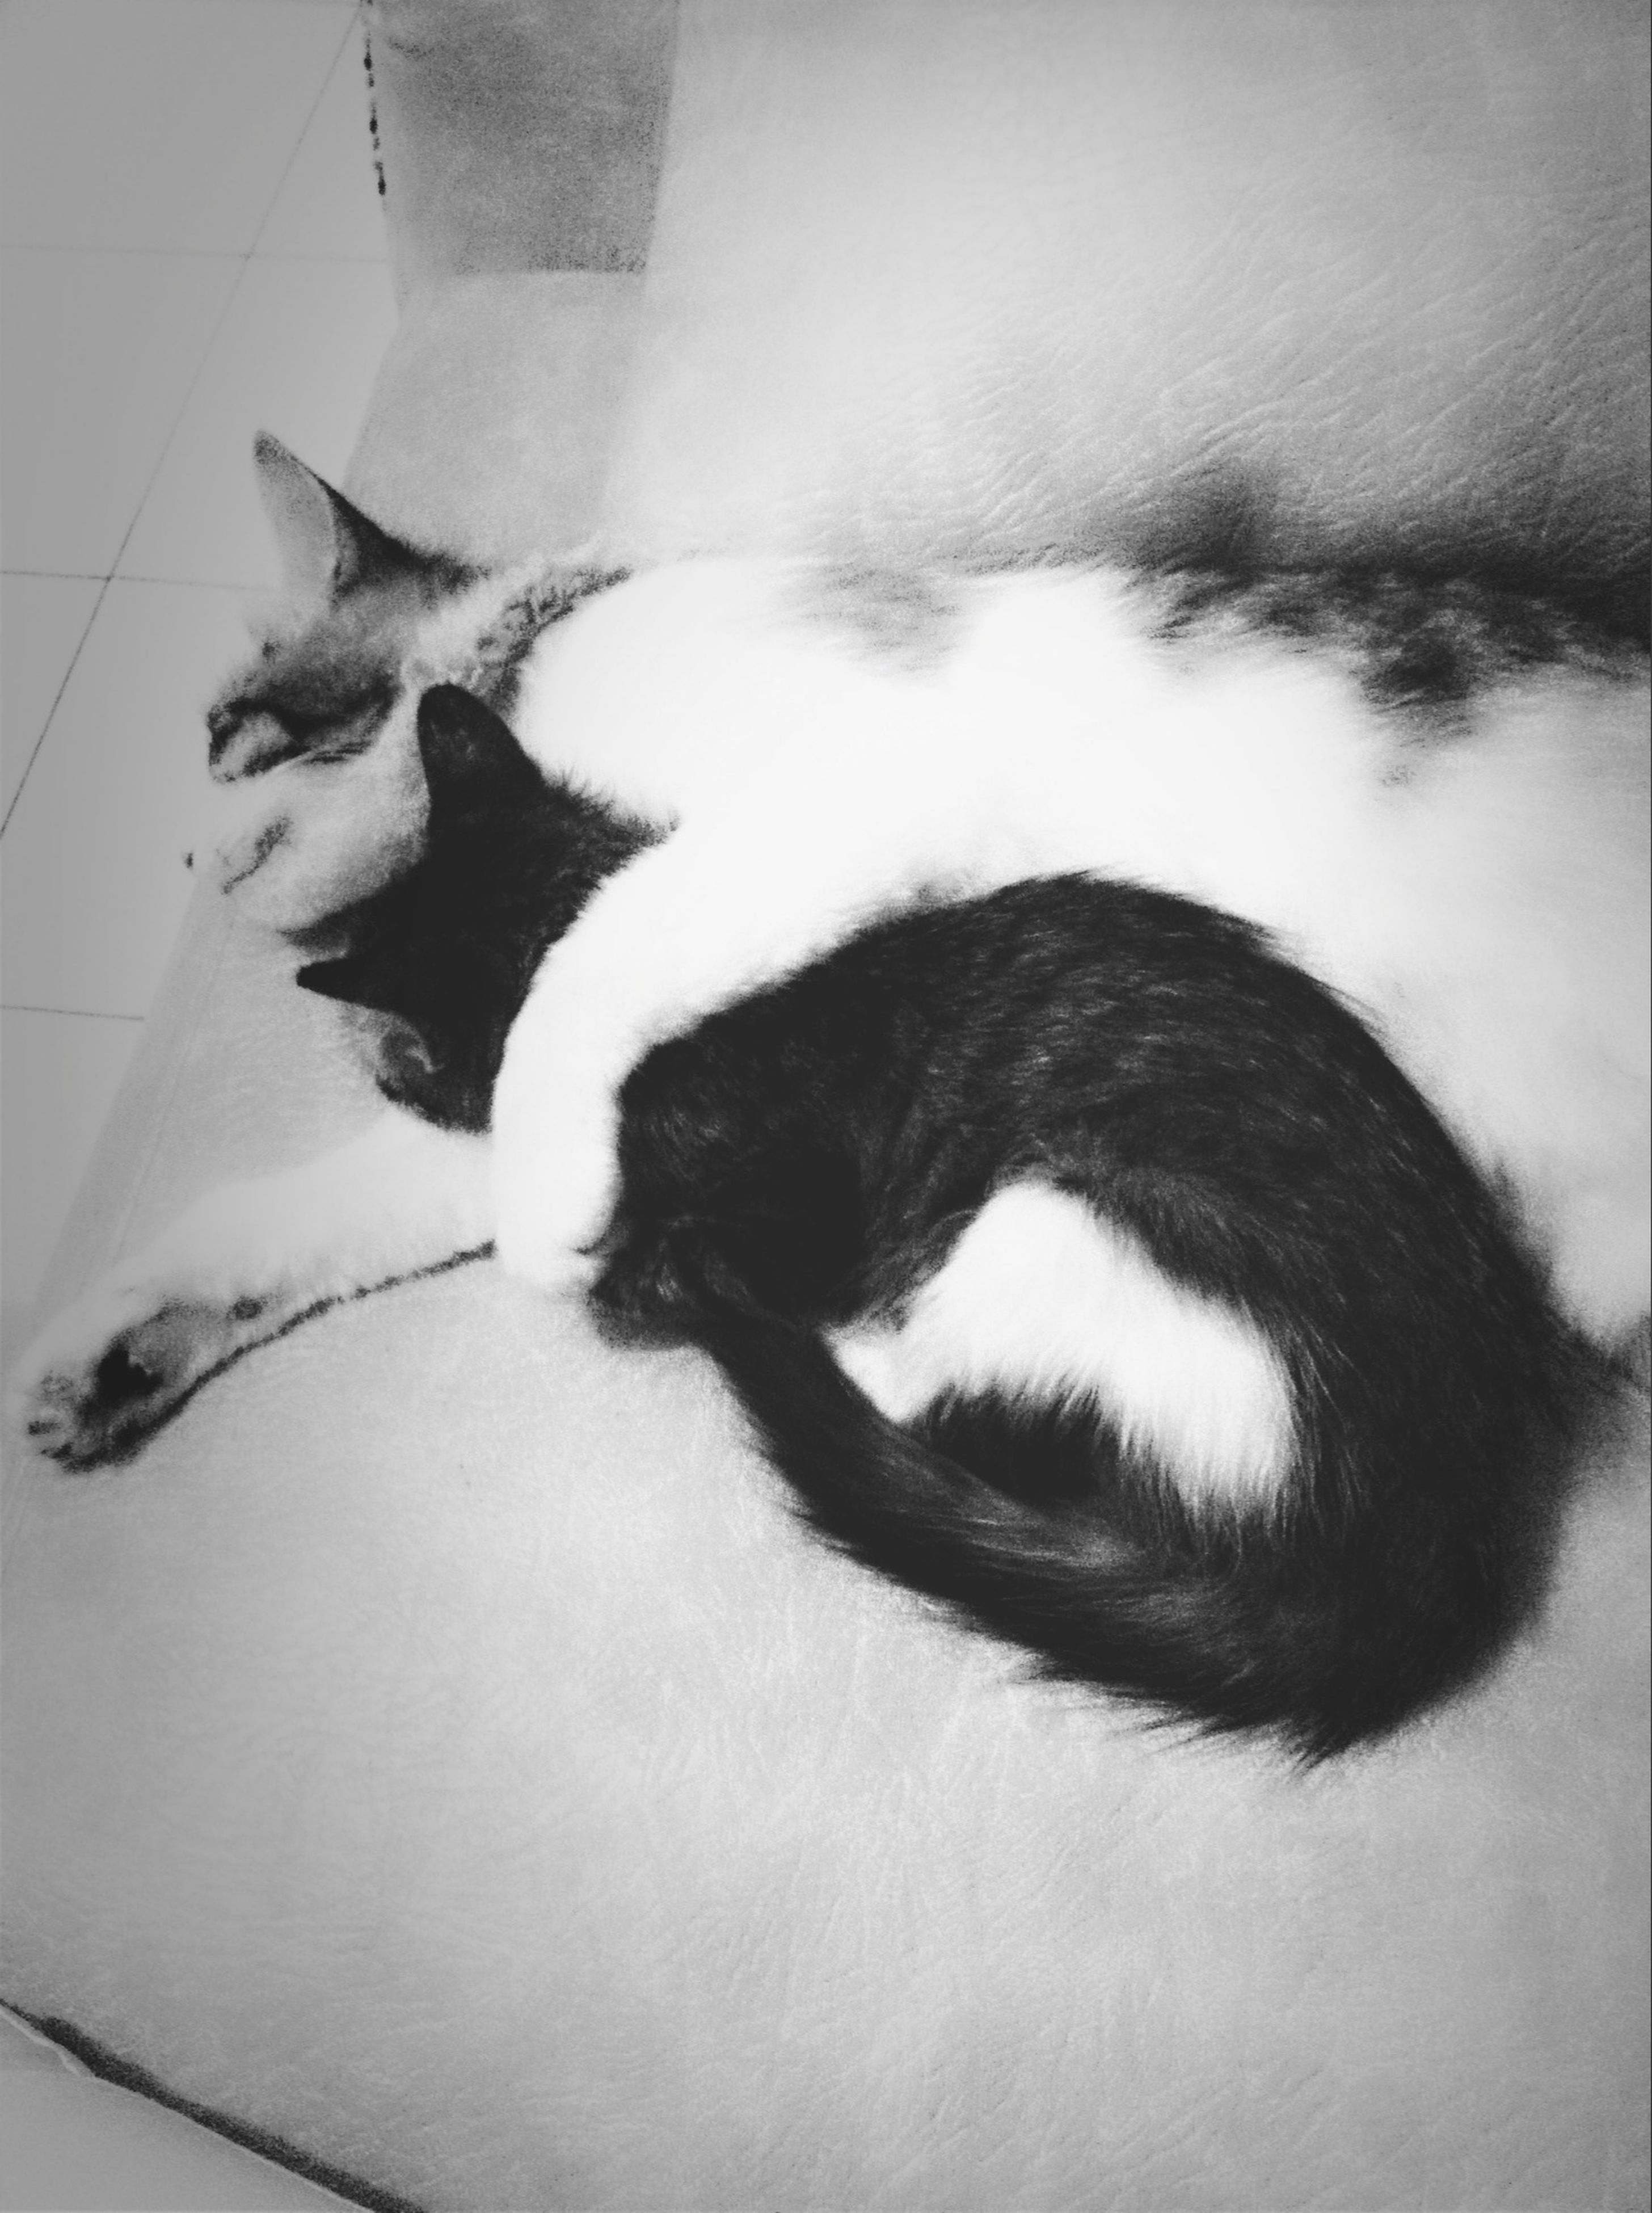 pets, domestic animals, one animal, animal themes, mammal, domestic cat, cat, indoors, relaxation, feline, high angle view, sleeping, resting, lying down, whisker, black color, dog, close-up, home interior, bed